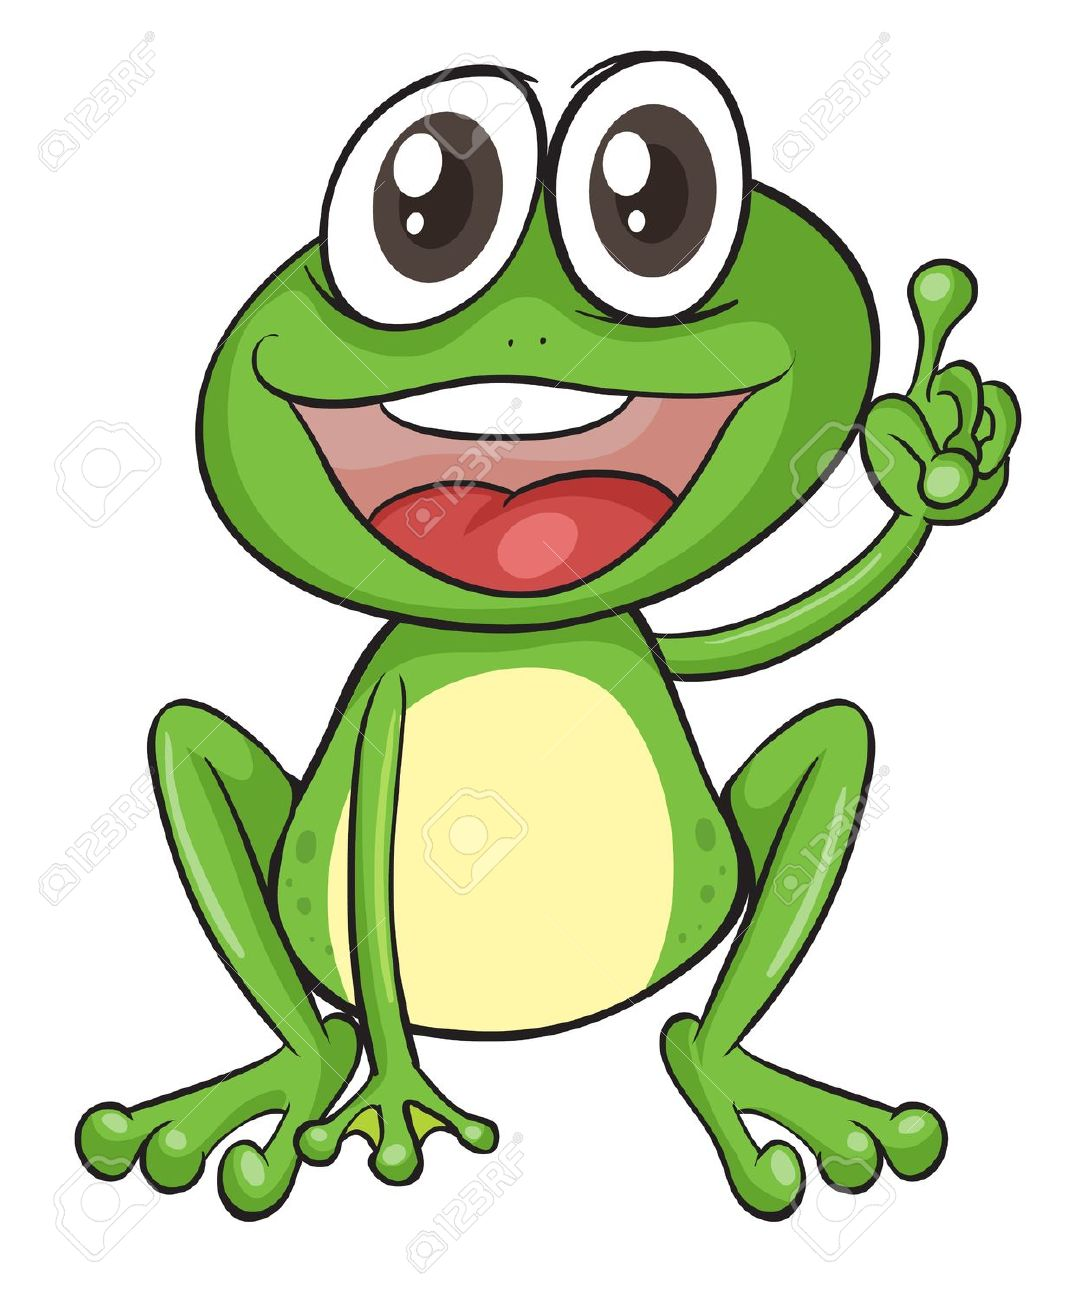 Free frog clip art drawings . - Clip Art Frogs